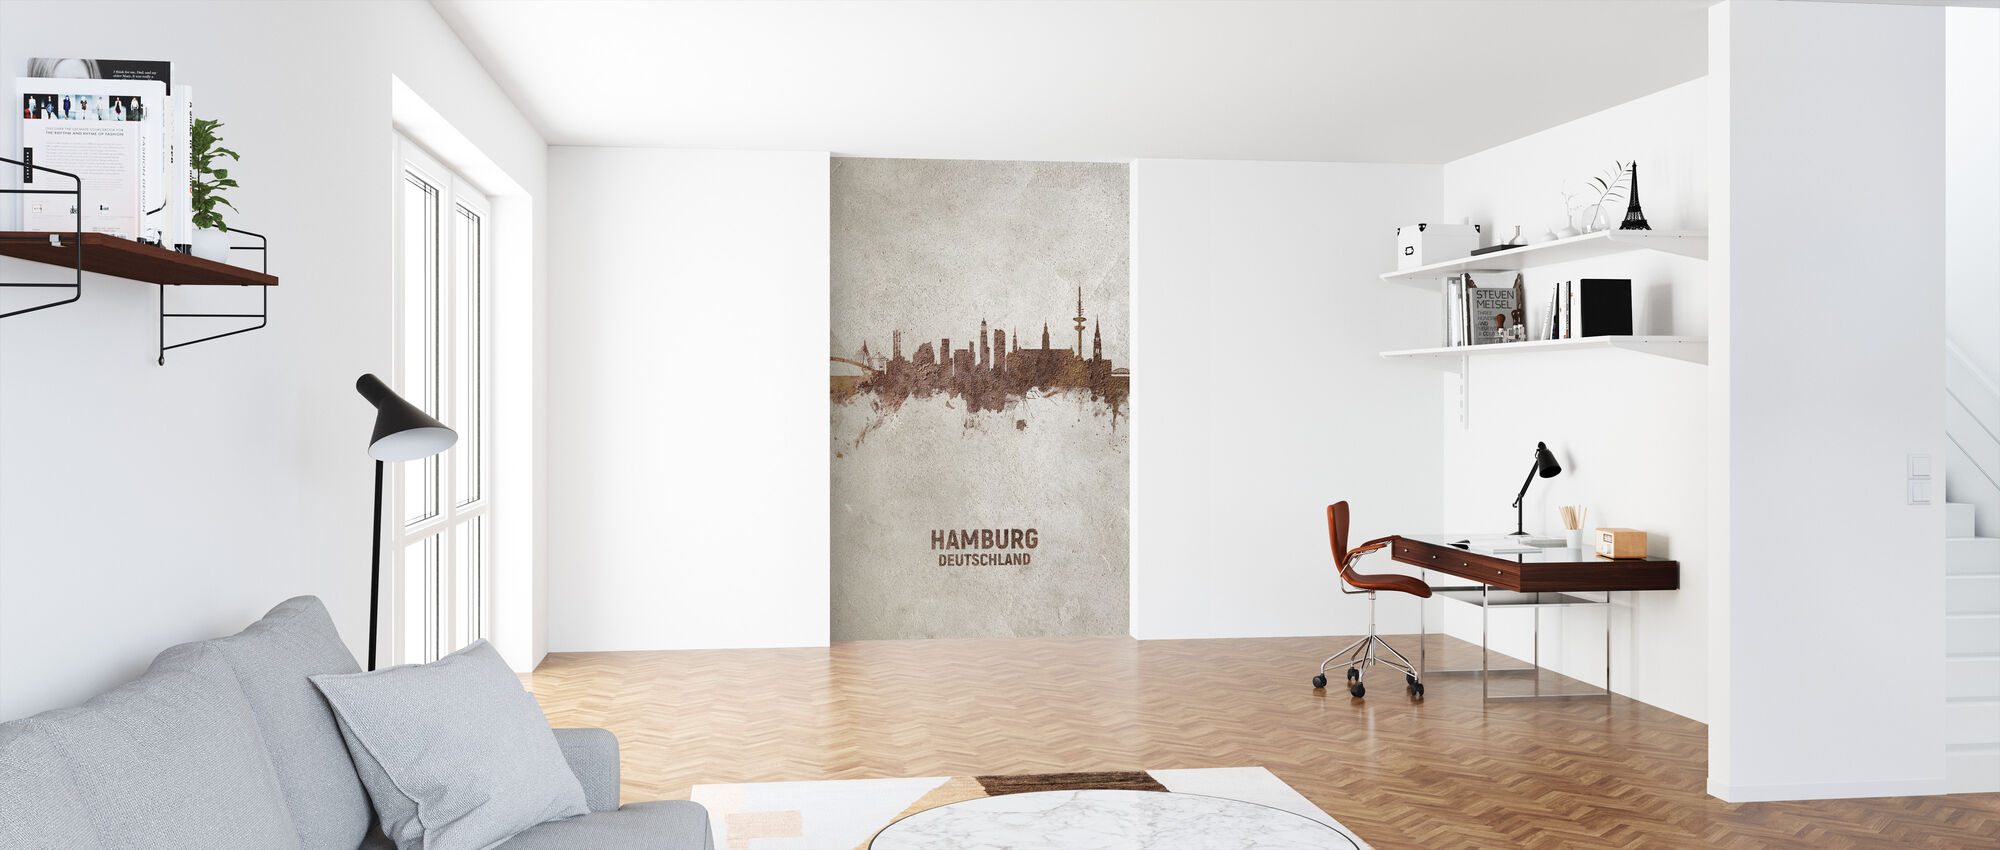 Hamburg Germany Rust Skyline - Wallpaper - Office